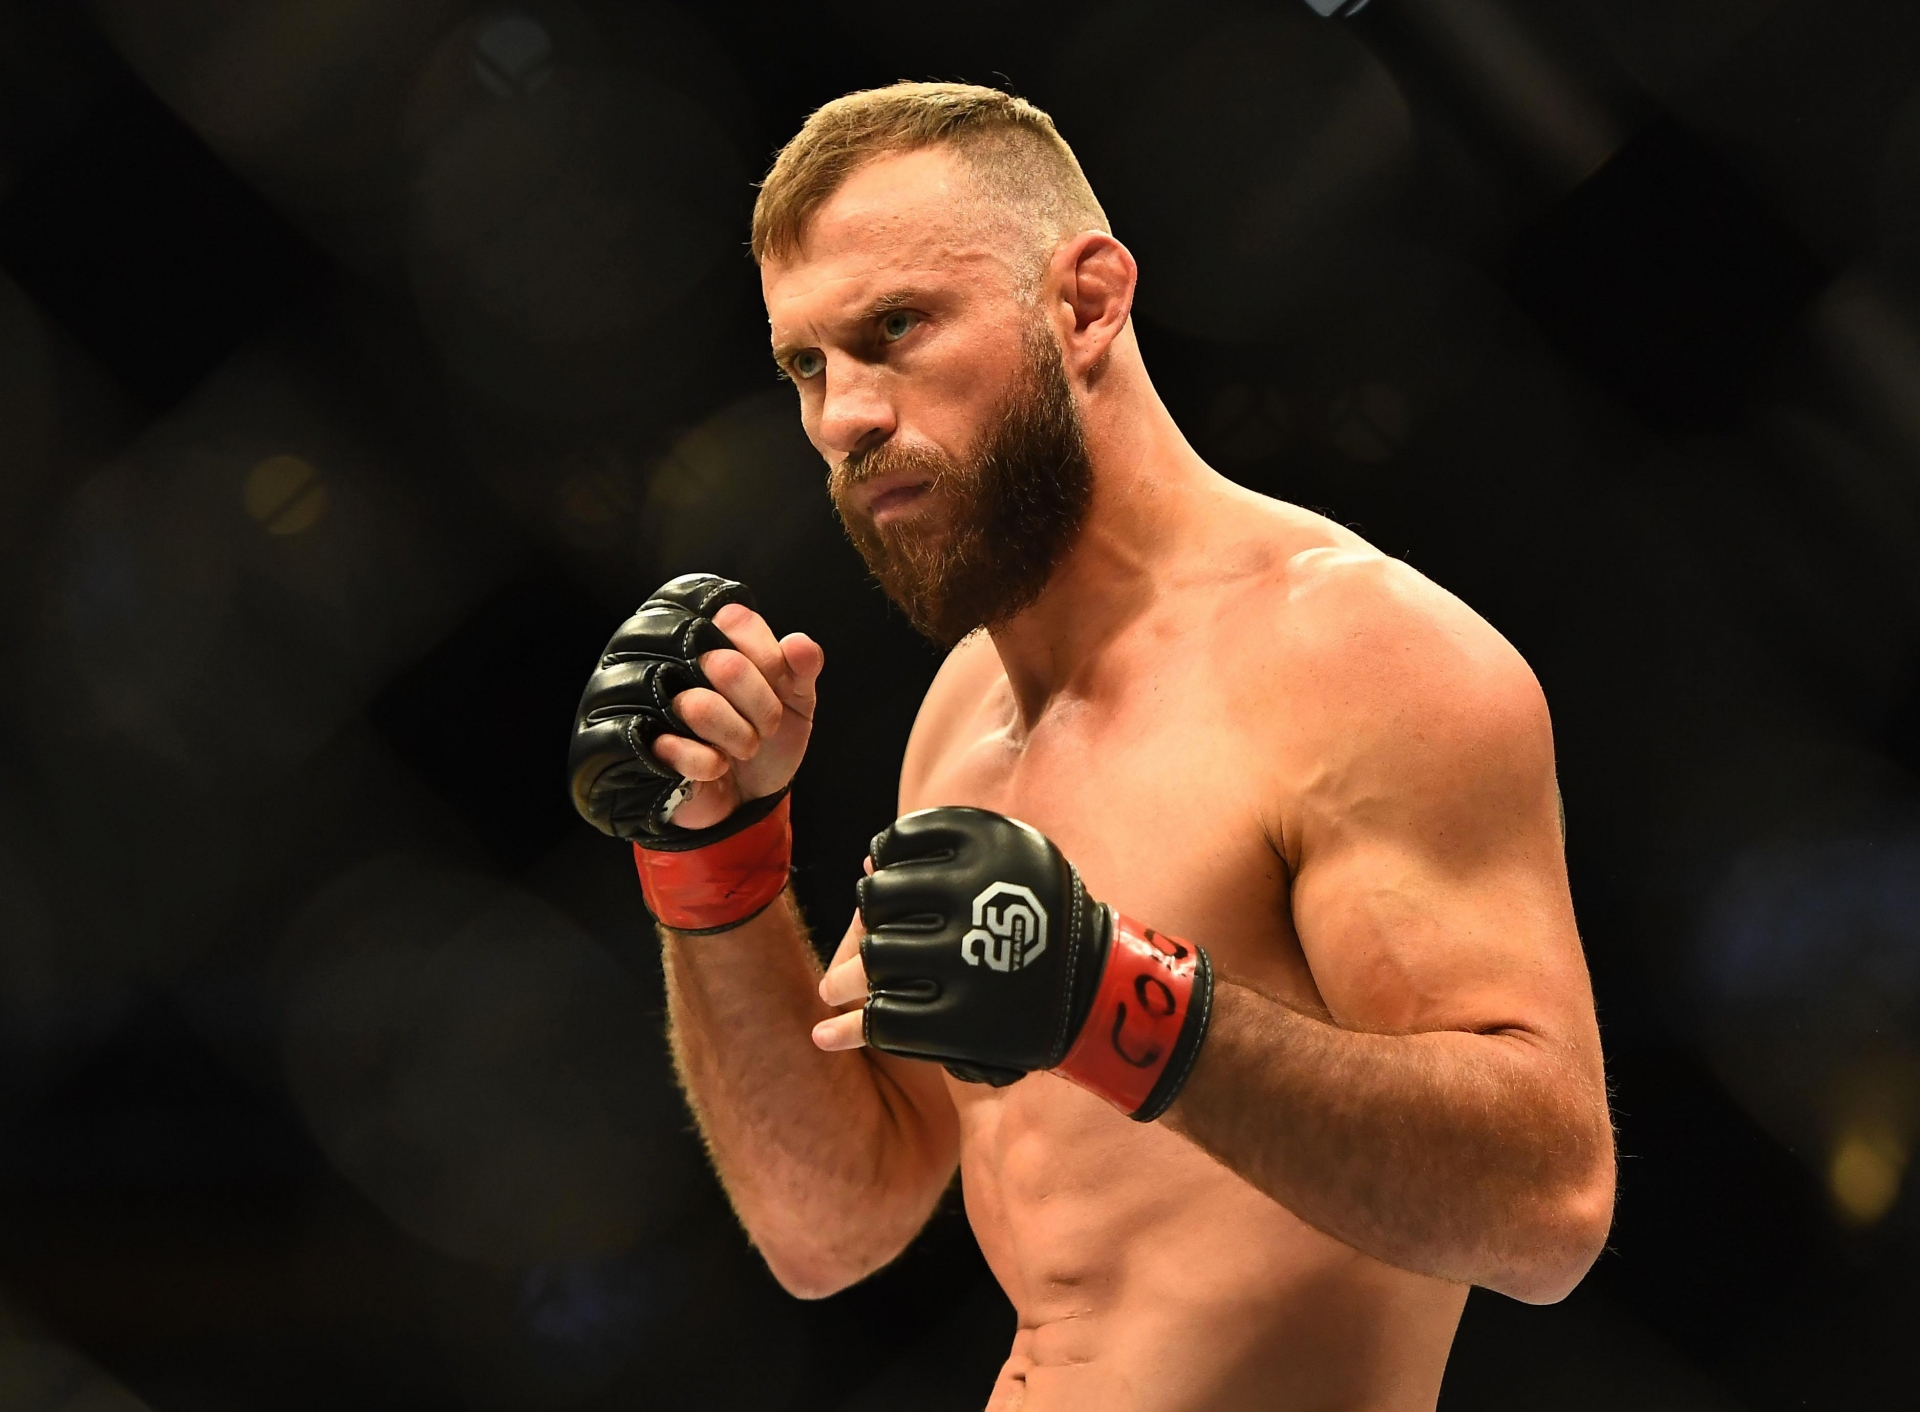 Top 10 Most Handsome UFC Fighters in America of All Time